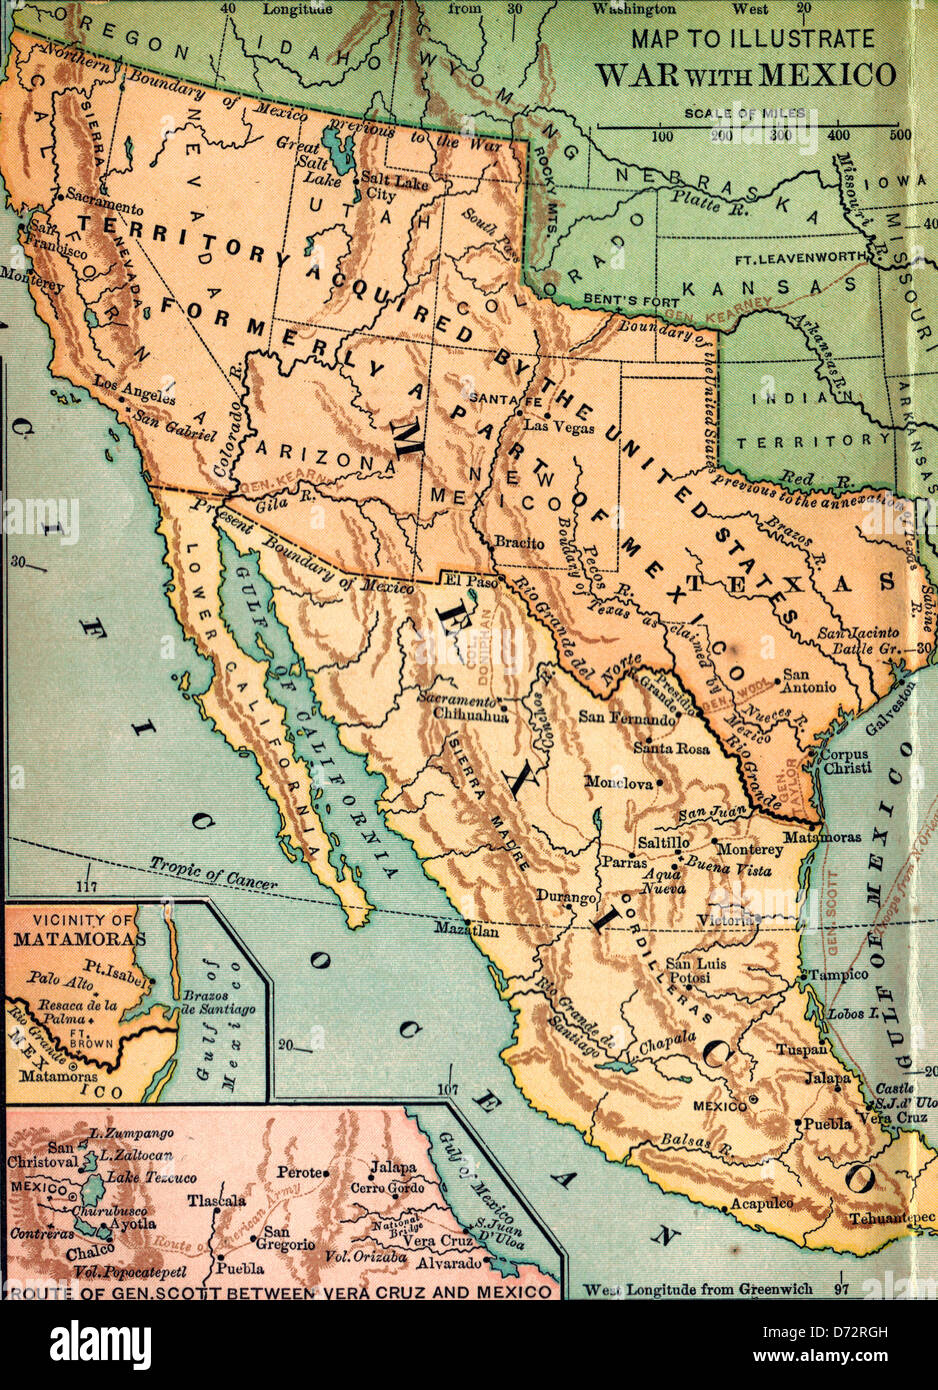 Map To Illustrate USA War With Mexico Stock Photo - Mexico and usa map